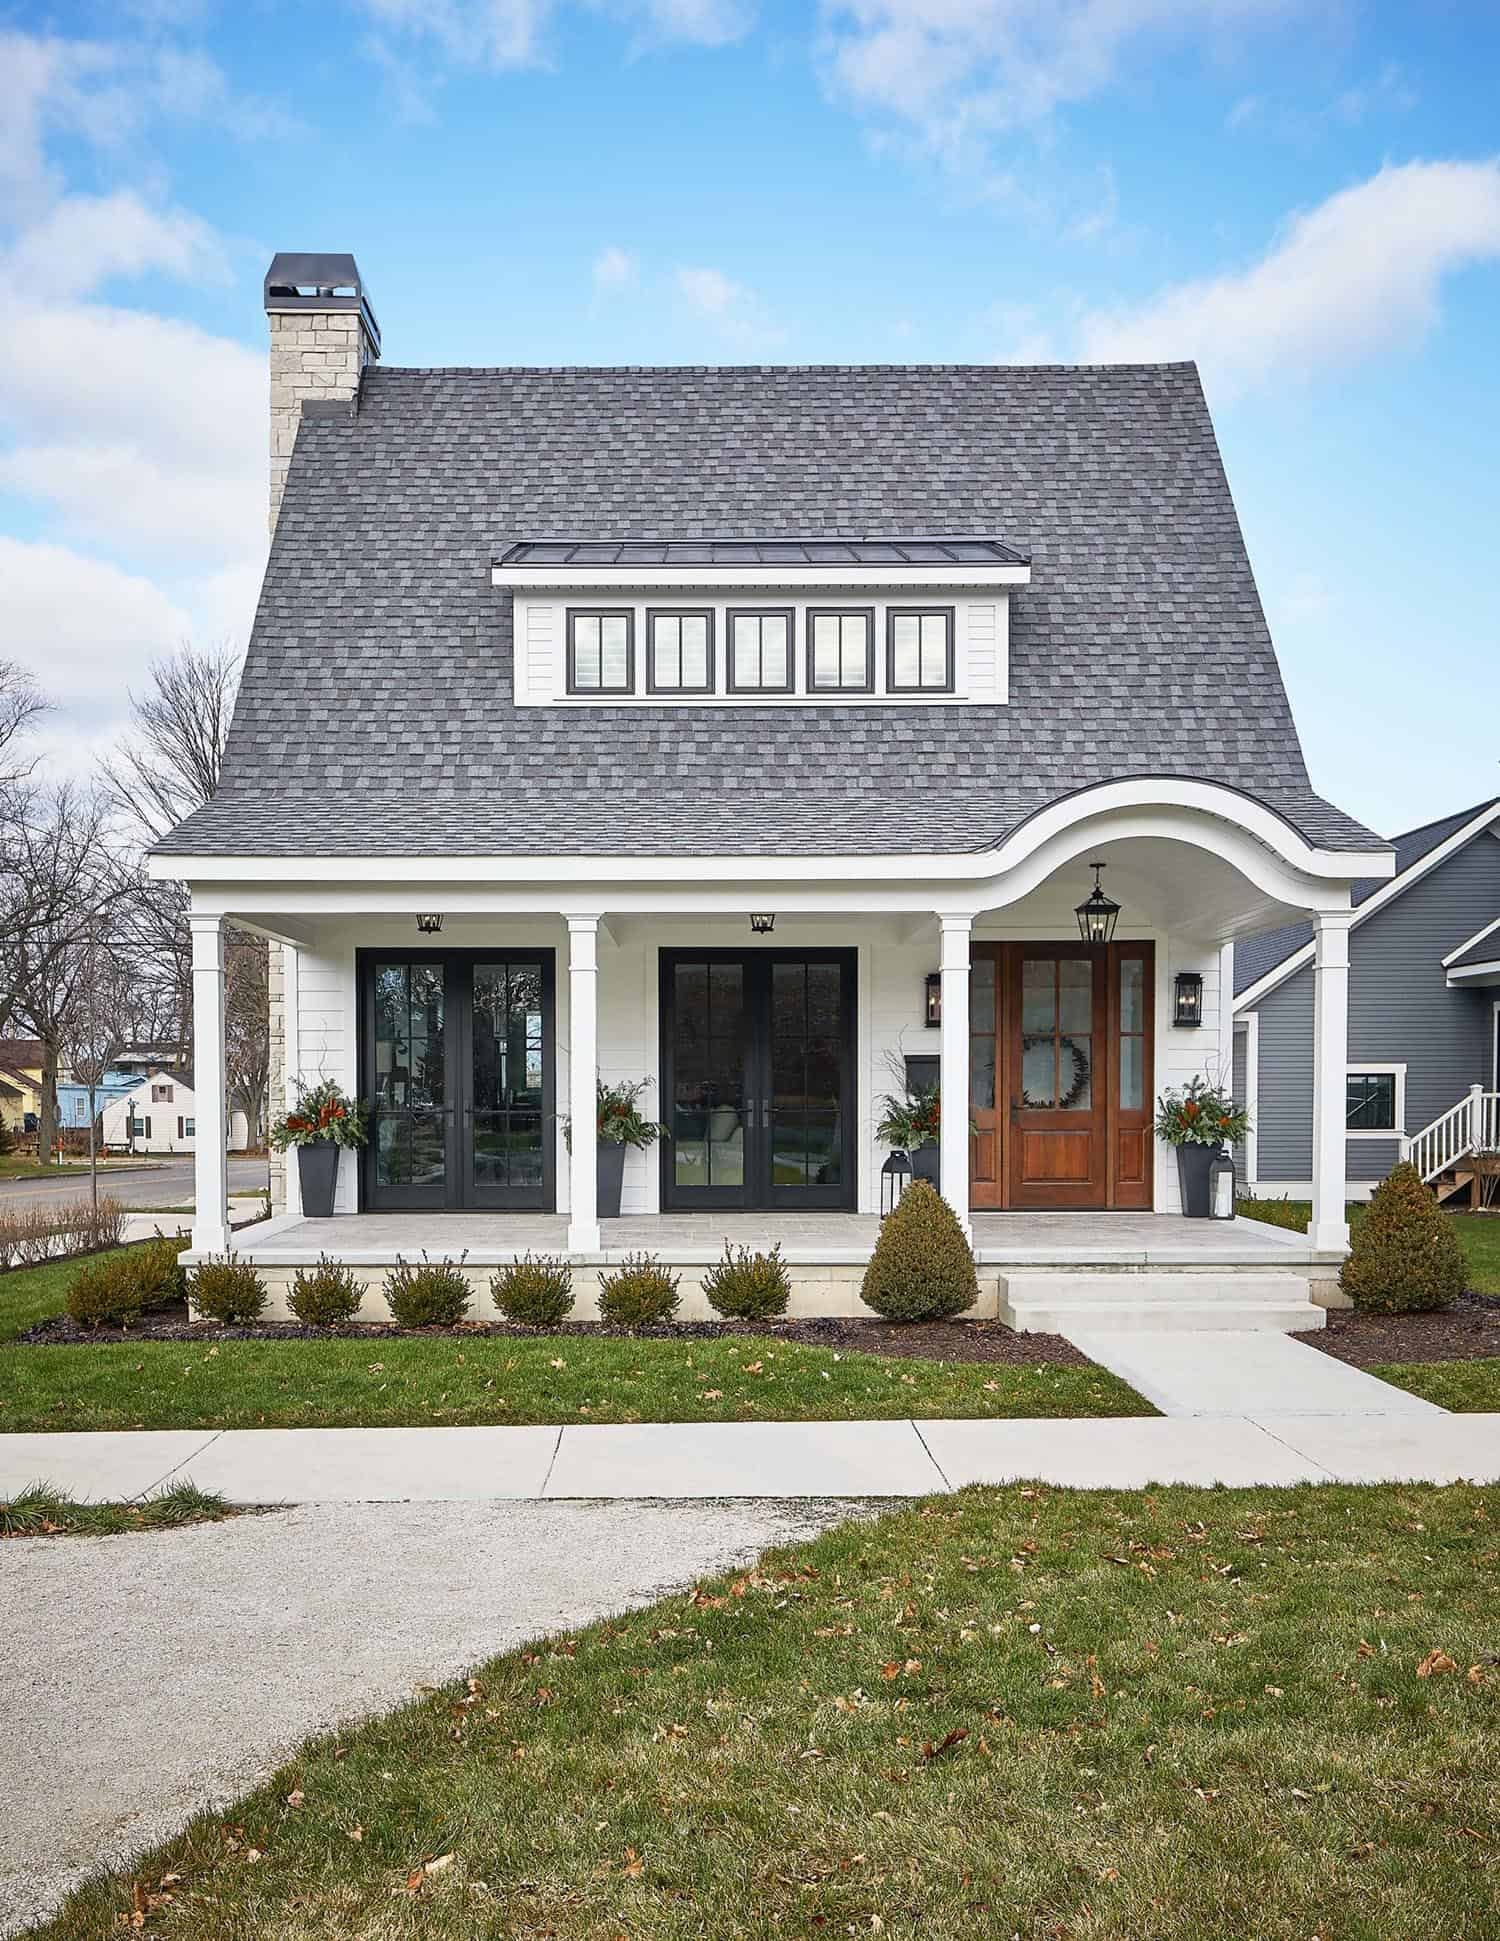 Tour This Delightful Modern Farmhouse With Cozy Details In Michigan In 2020 Modern Farmhouse Craftsman Style Homes House Exterior